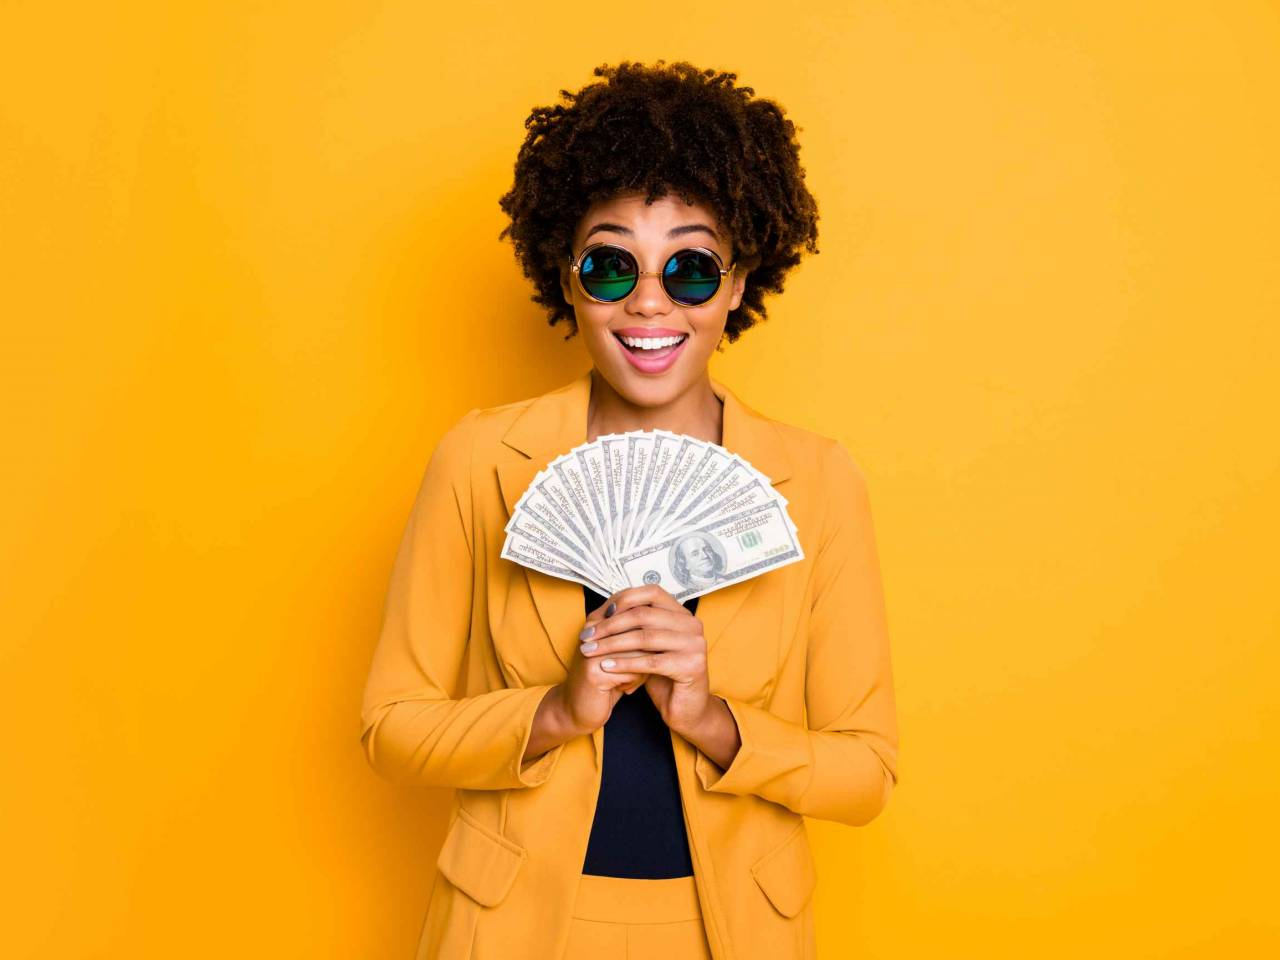 woman on yellow background holding cash